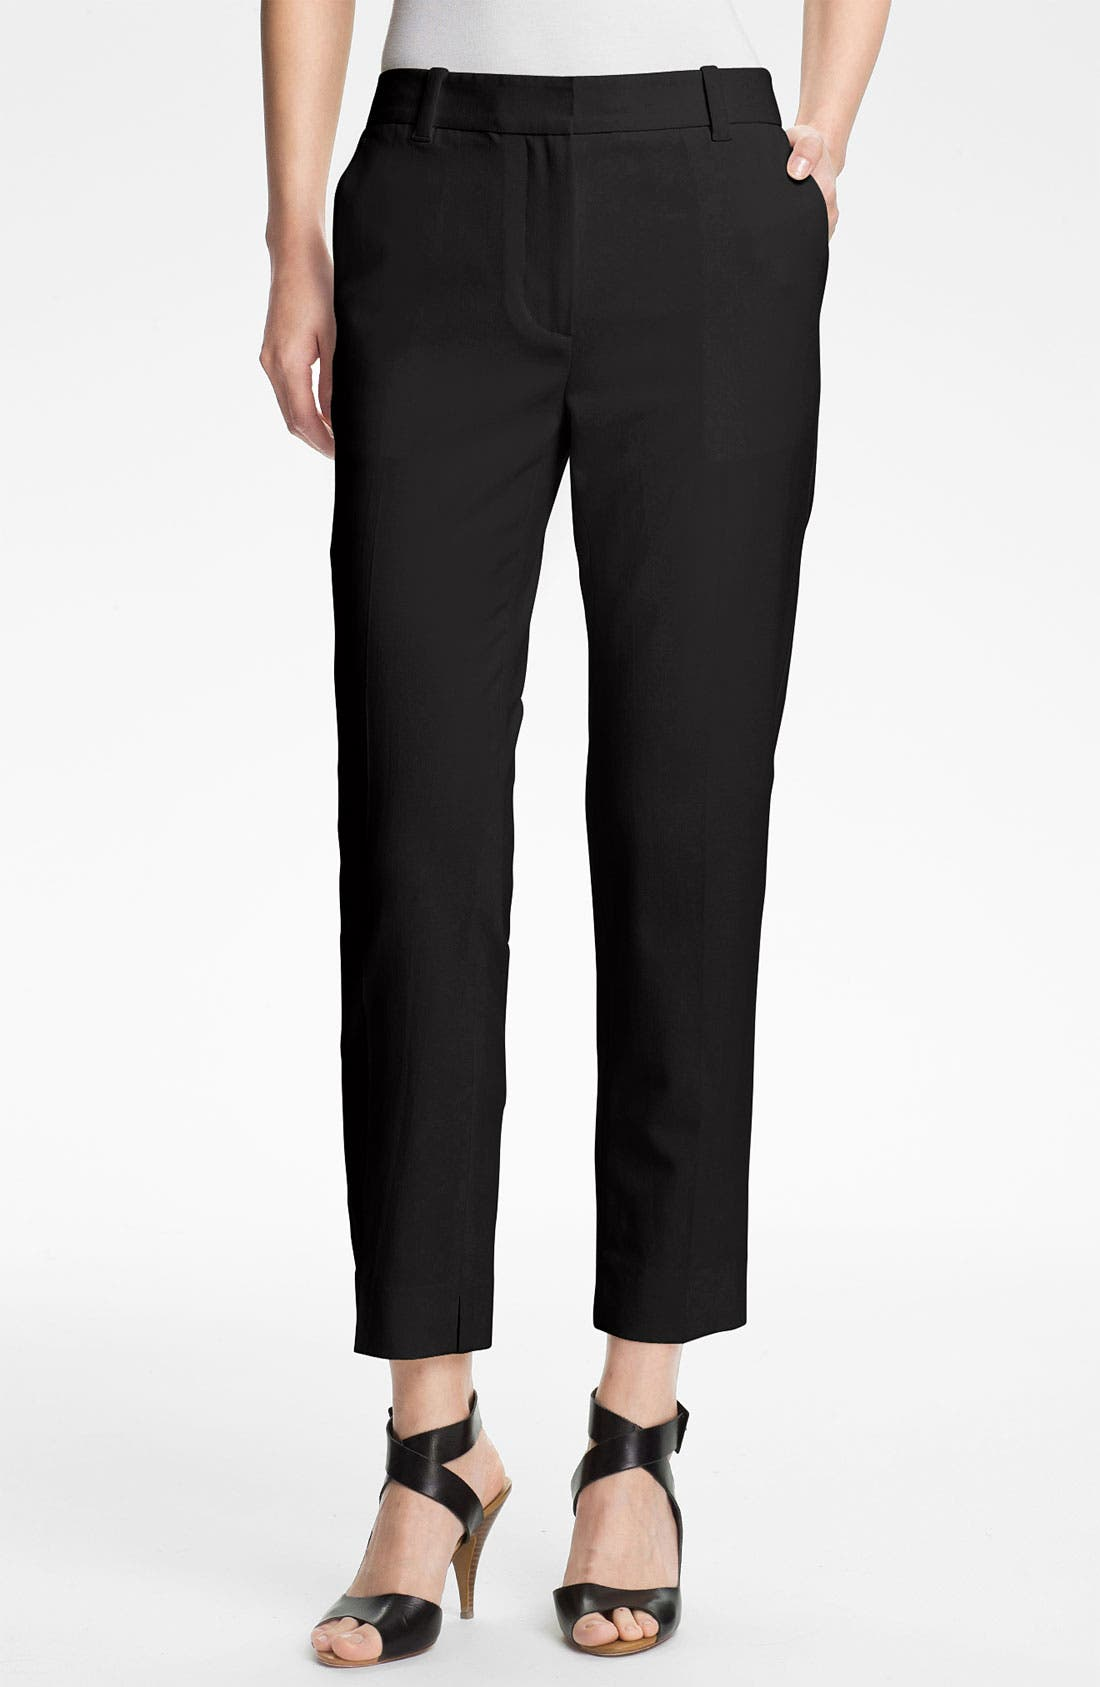 Main Image - 3.1 Phillip Lim Crop Stretch Wool Trousers